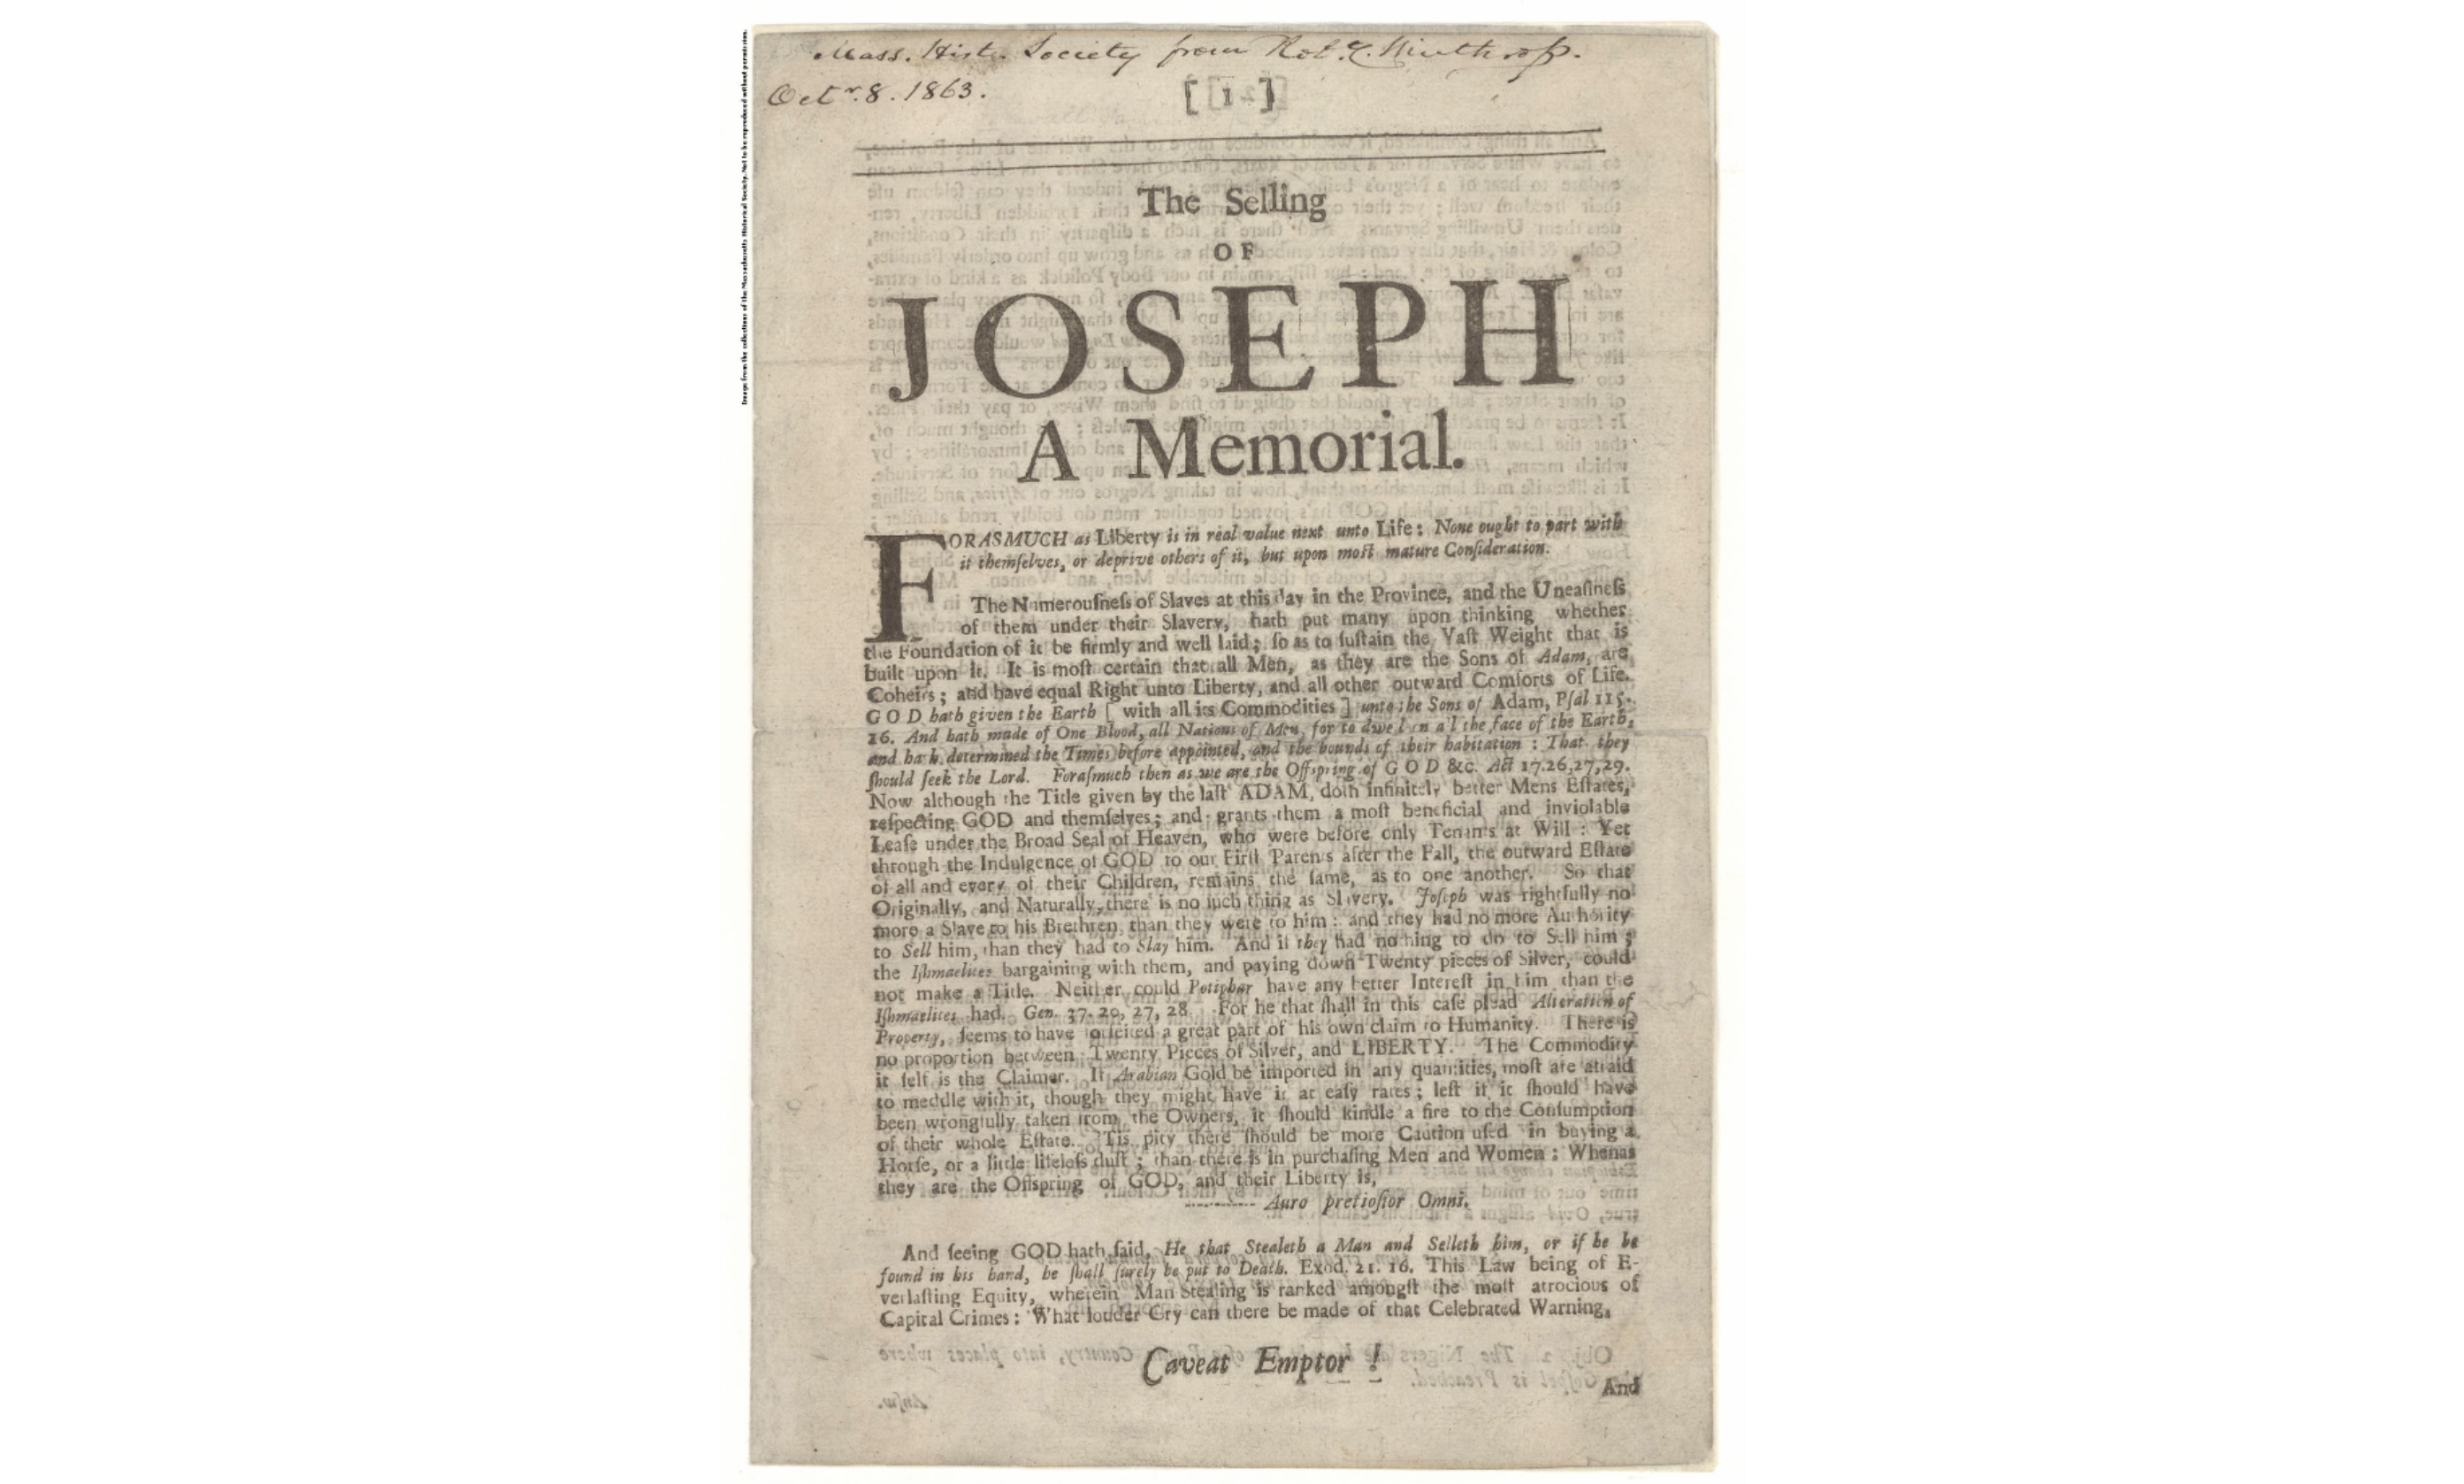 The Selling of Joseph: A Memorial